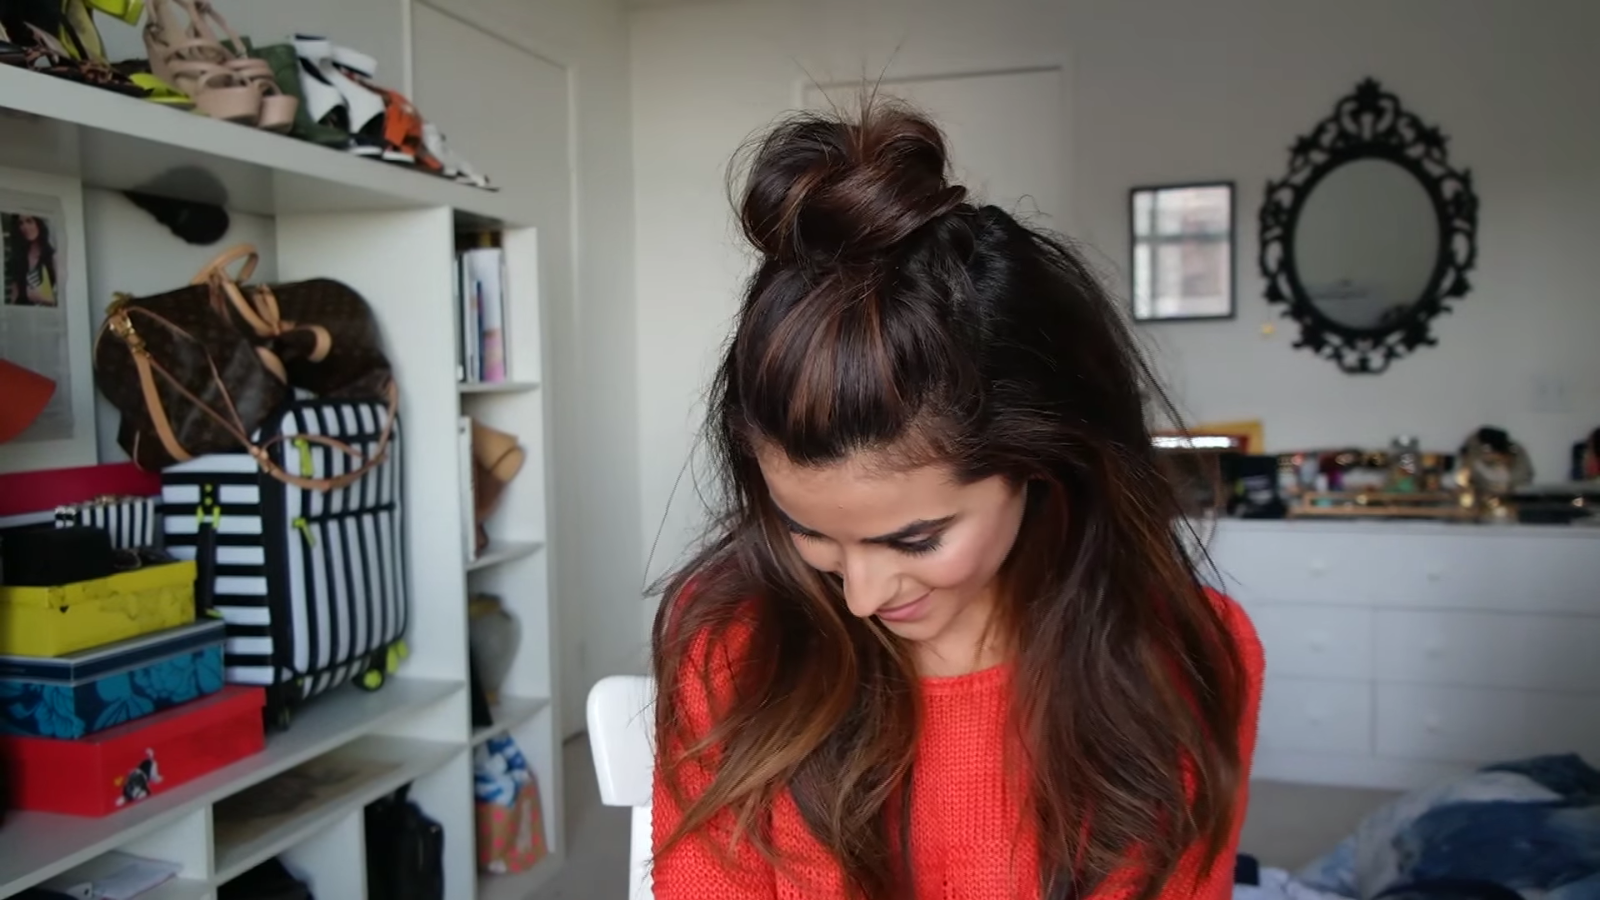 Styles For Greasy Hair 10 Quick & Easy Greasy Hairstyles For When You Can't Be Bothered .